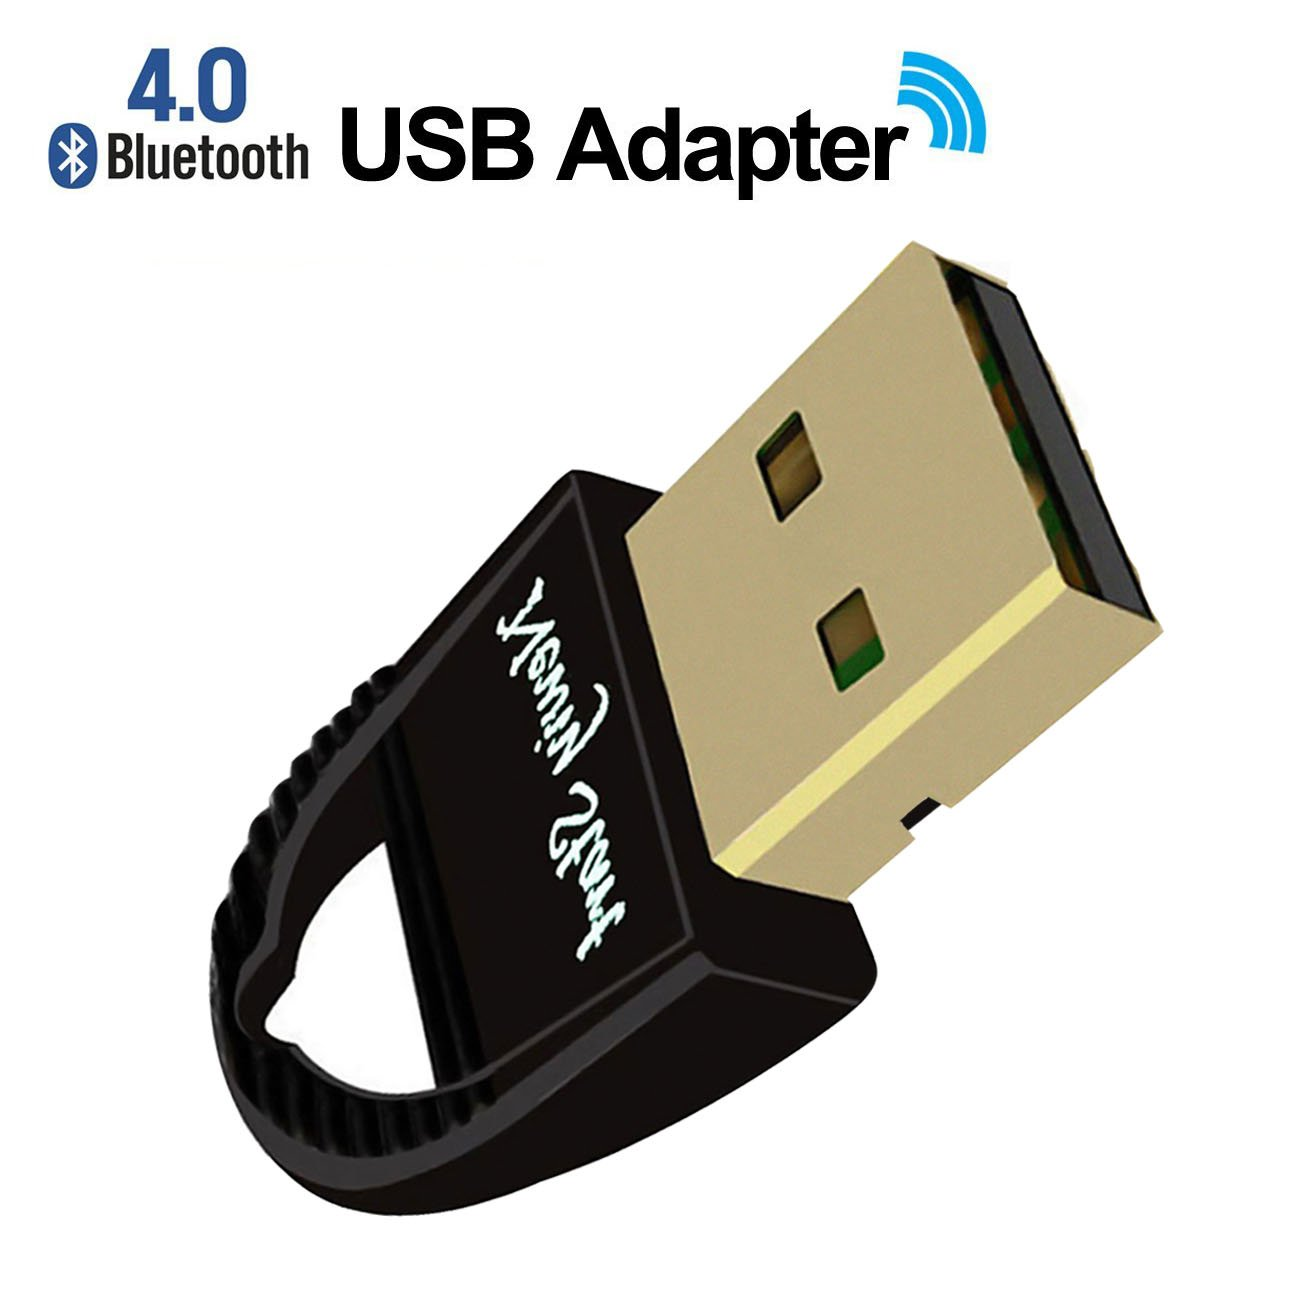 USB Bluetooth 4.0 Adapter Wireless Dongle for PC,Laptop,Speakers,Keyboard, Mouse, Headphone/Headset,Smartphones,tablets iPad,Support All Windows 10 8 7 XP vista [2 Year Warranty]